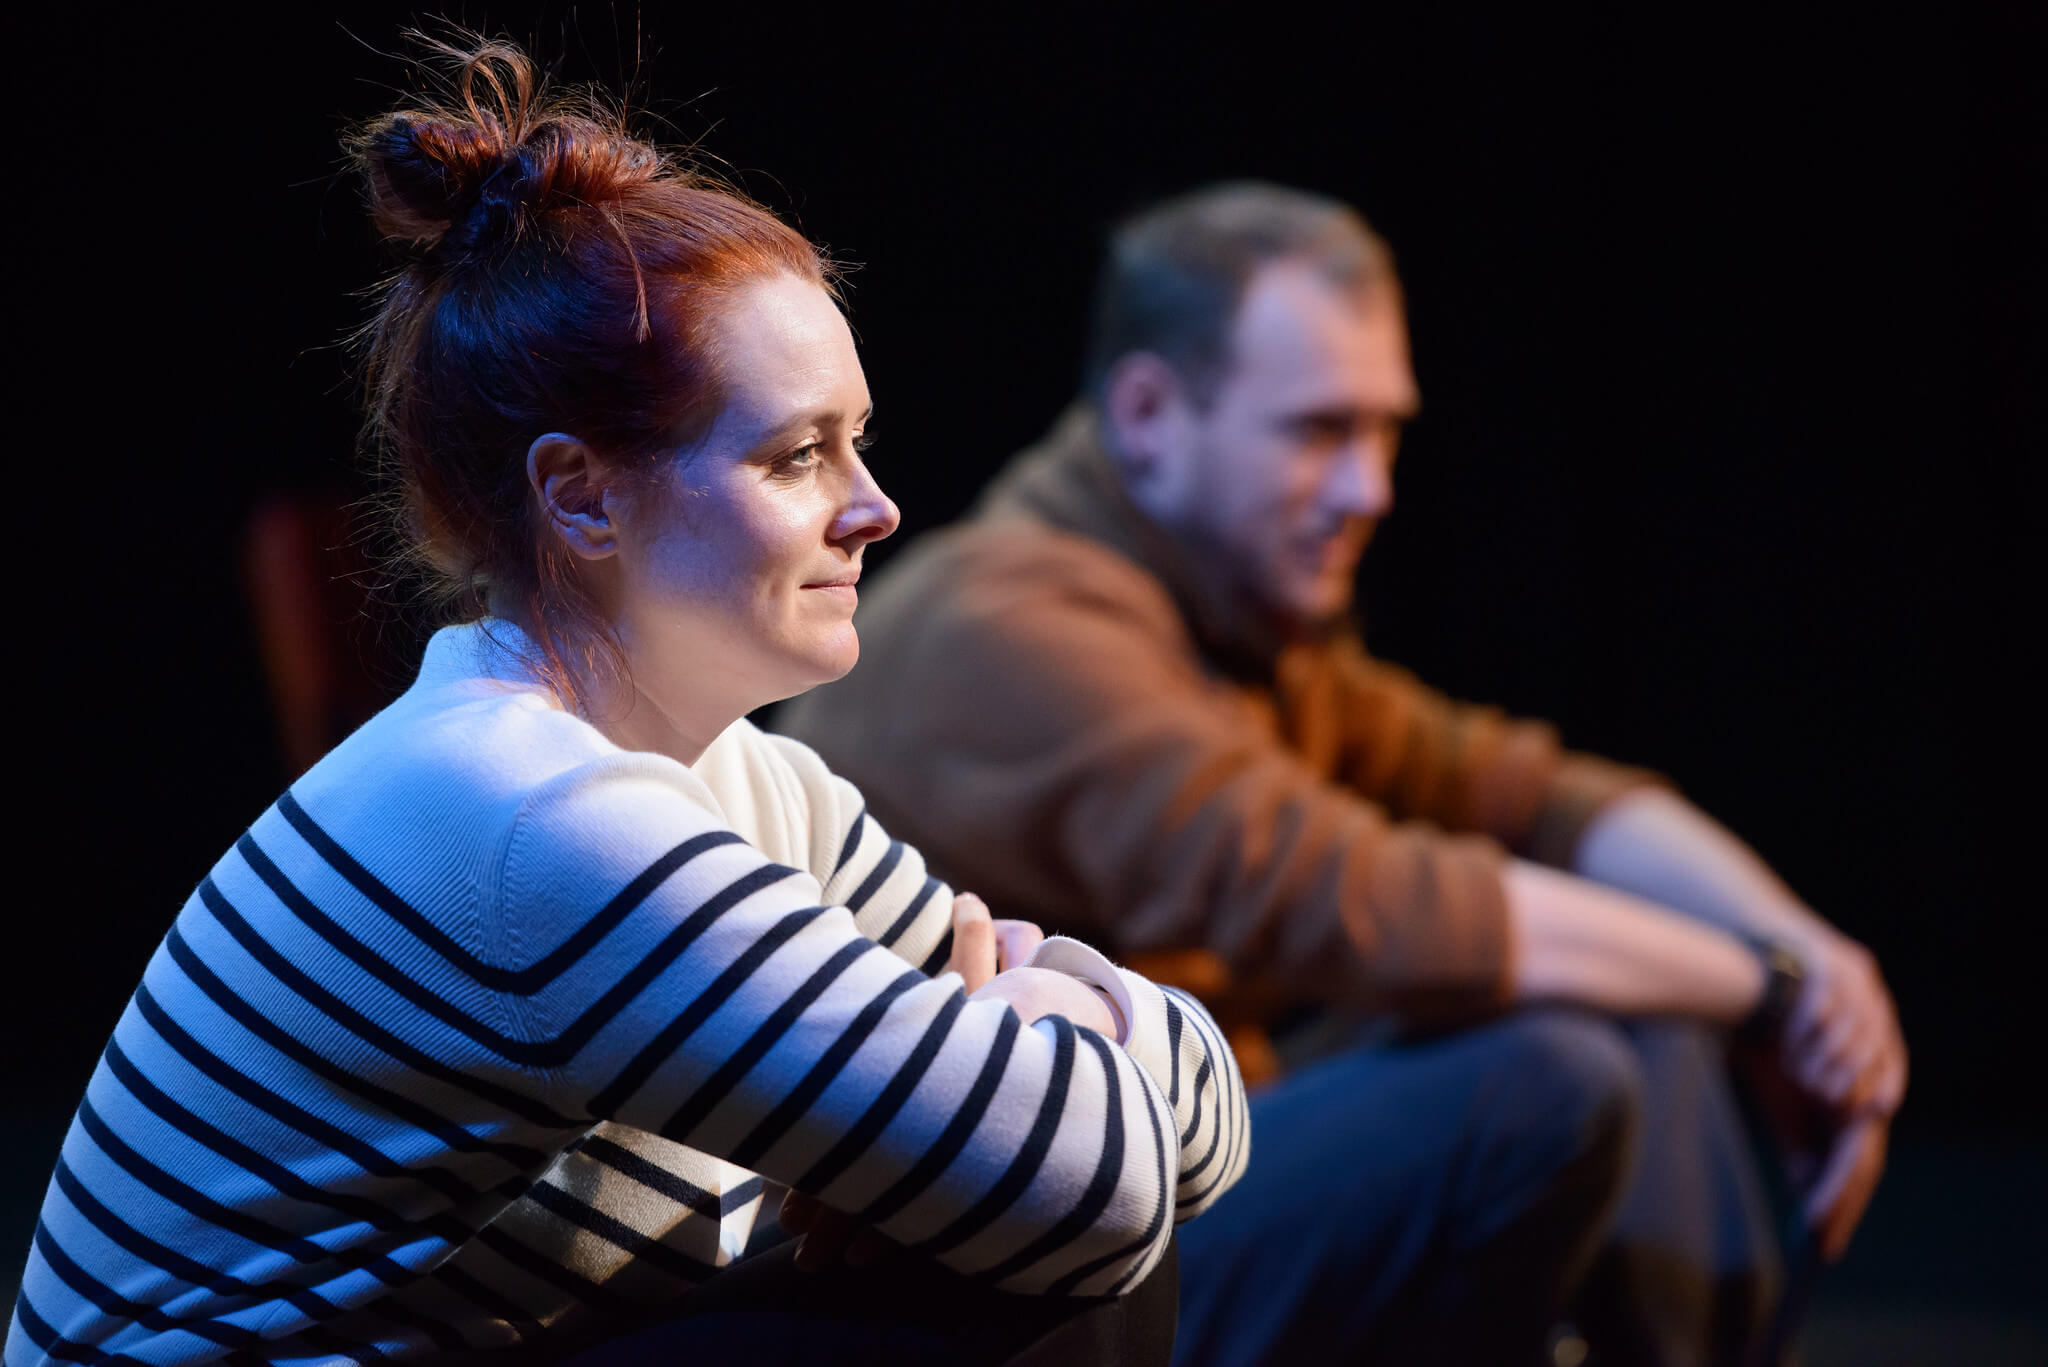 Fibres Film production image showing Suzanne Magowan sitting with her arms folded and Ali Craig sitting in the background